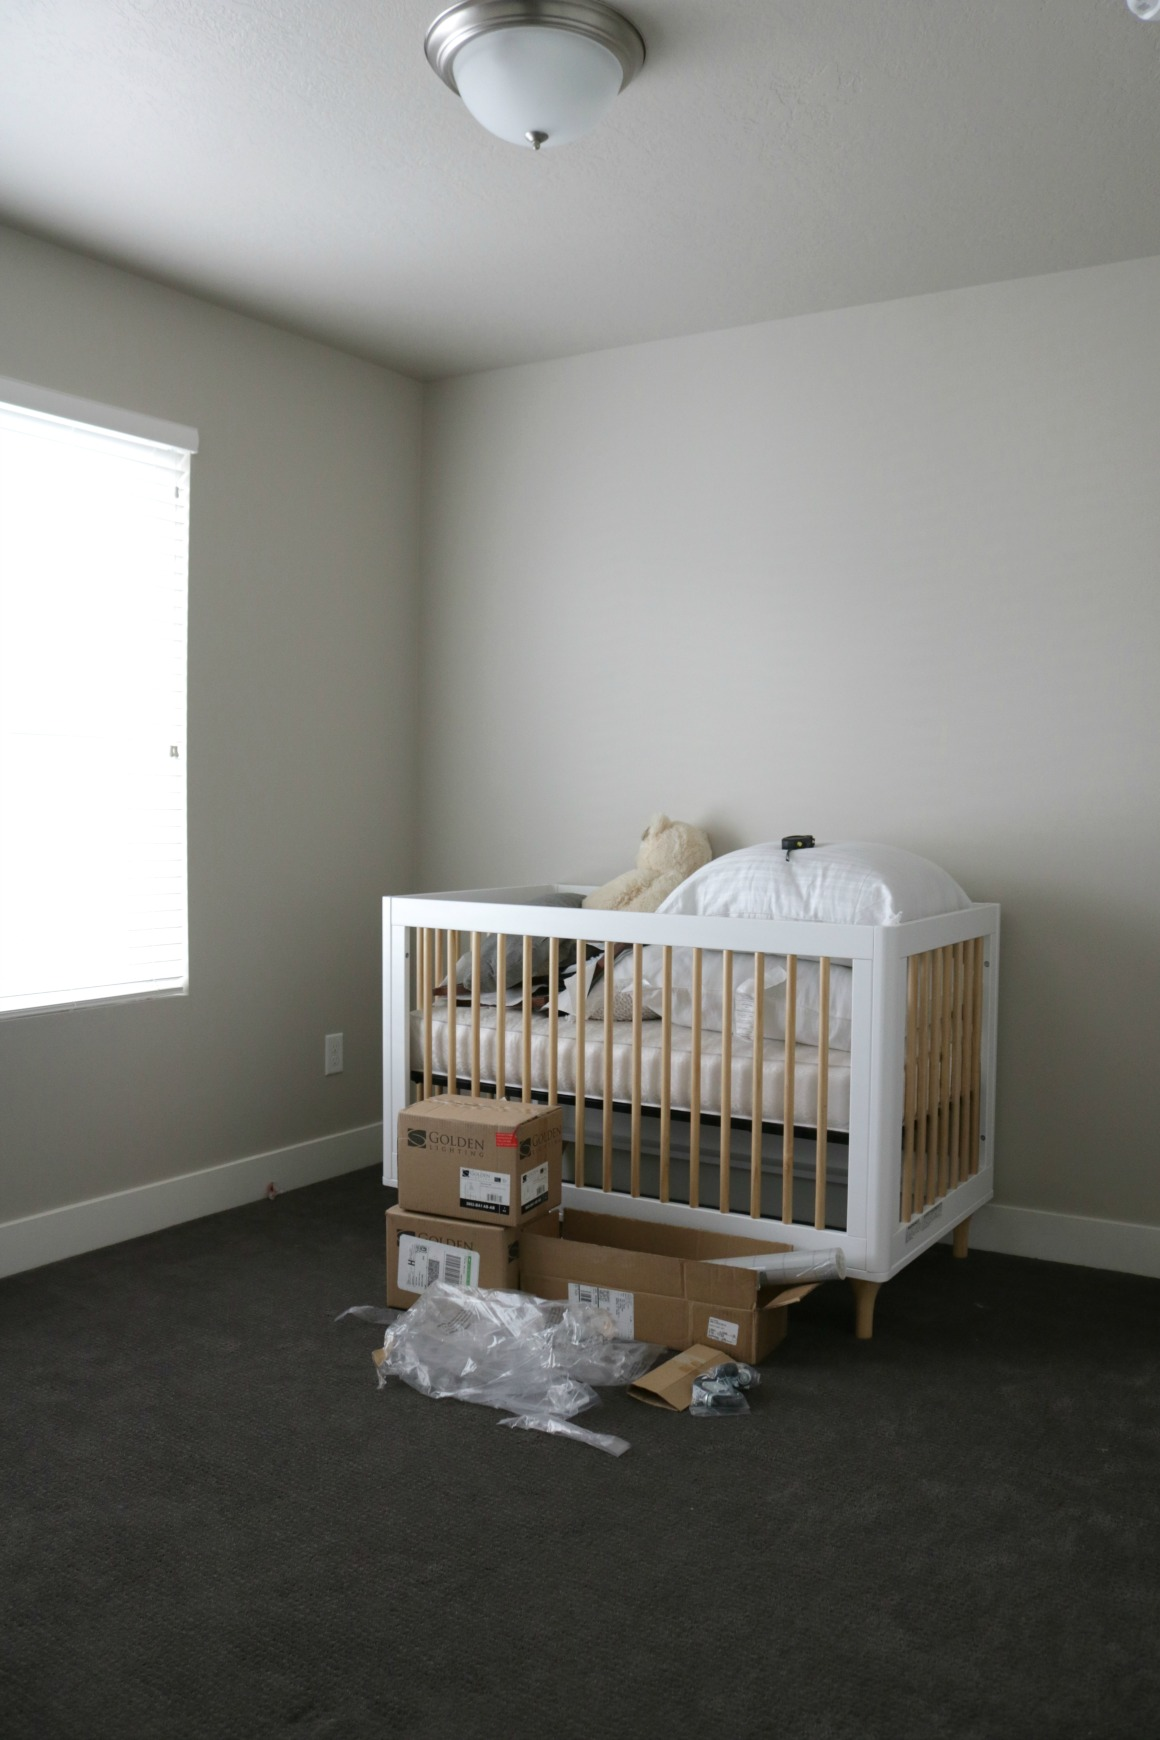 Nursery Project- Design Plan with Window Seat